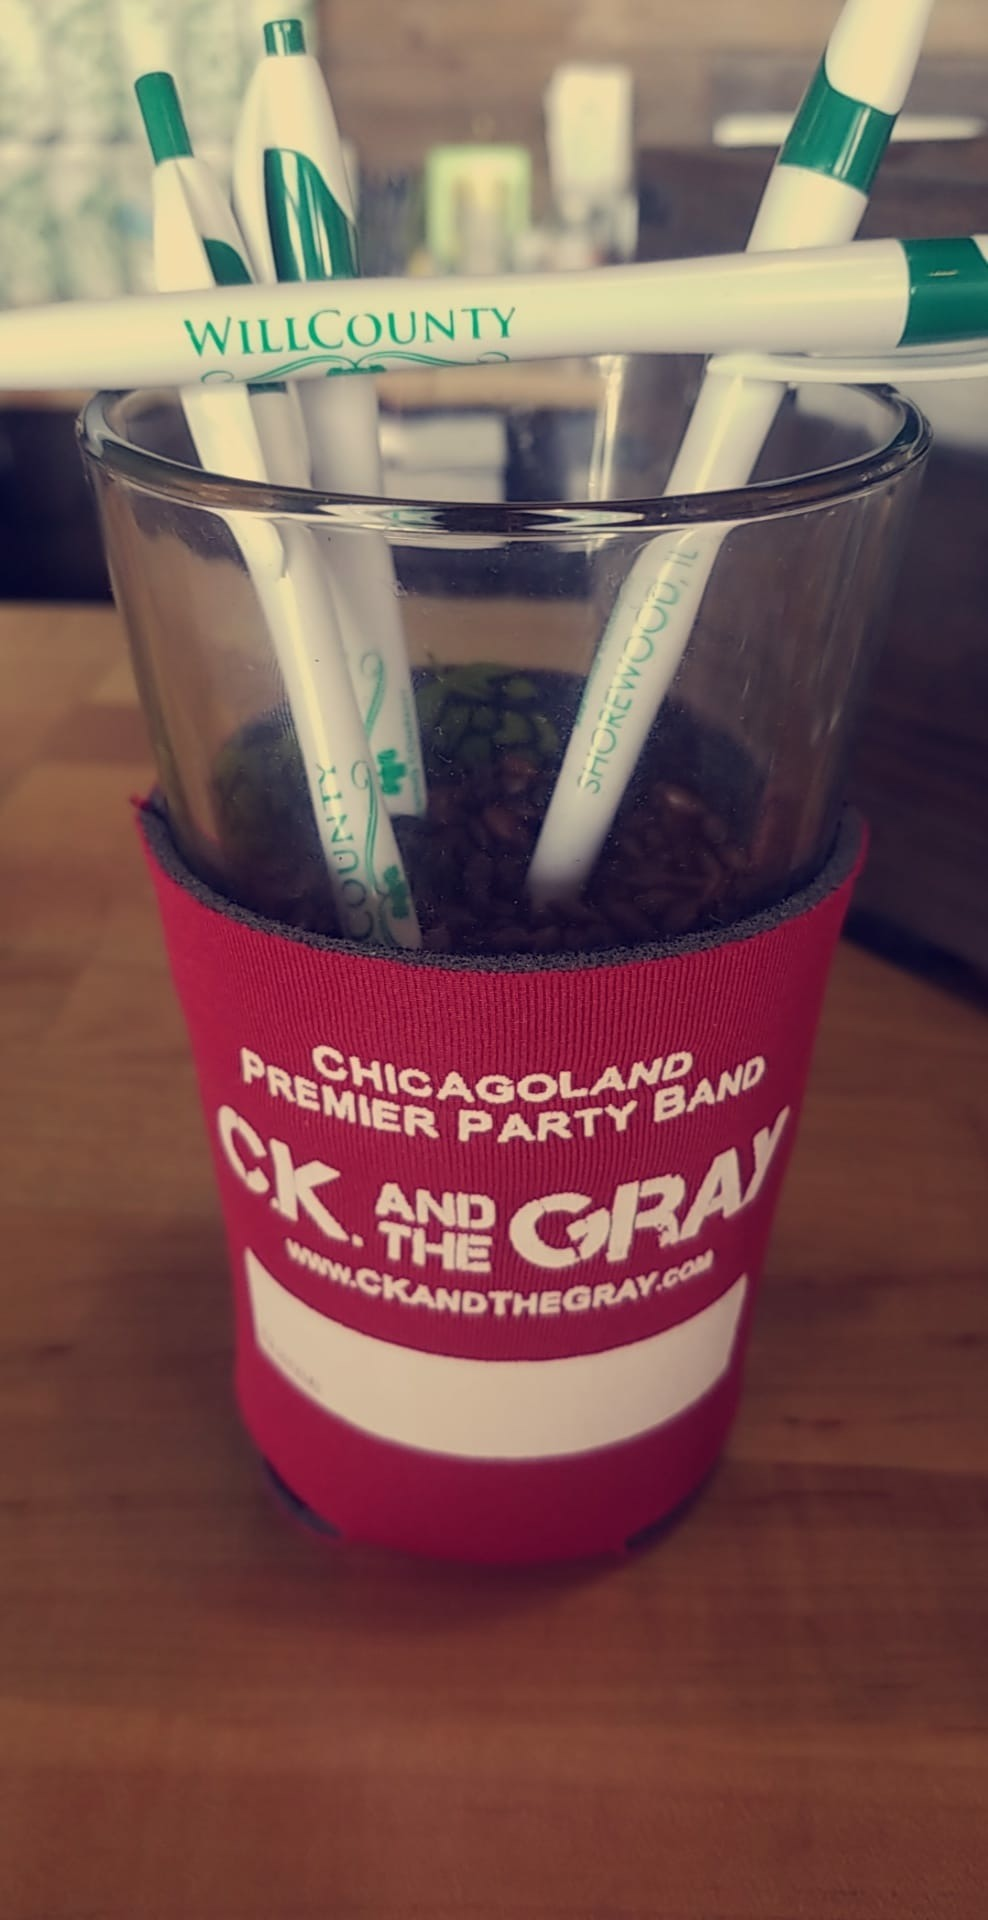 Juliee Wai's #ckkoozie user submission